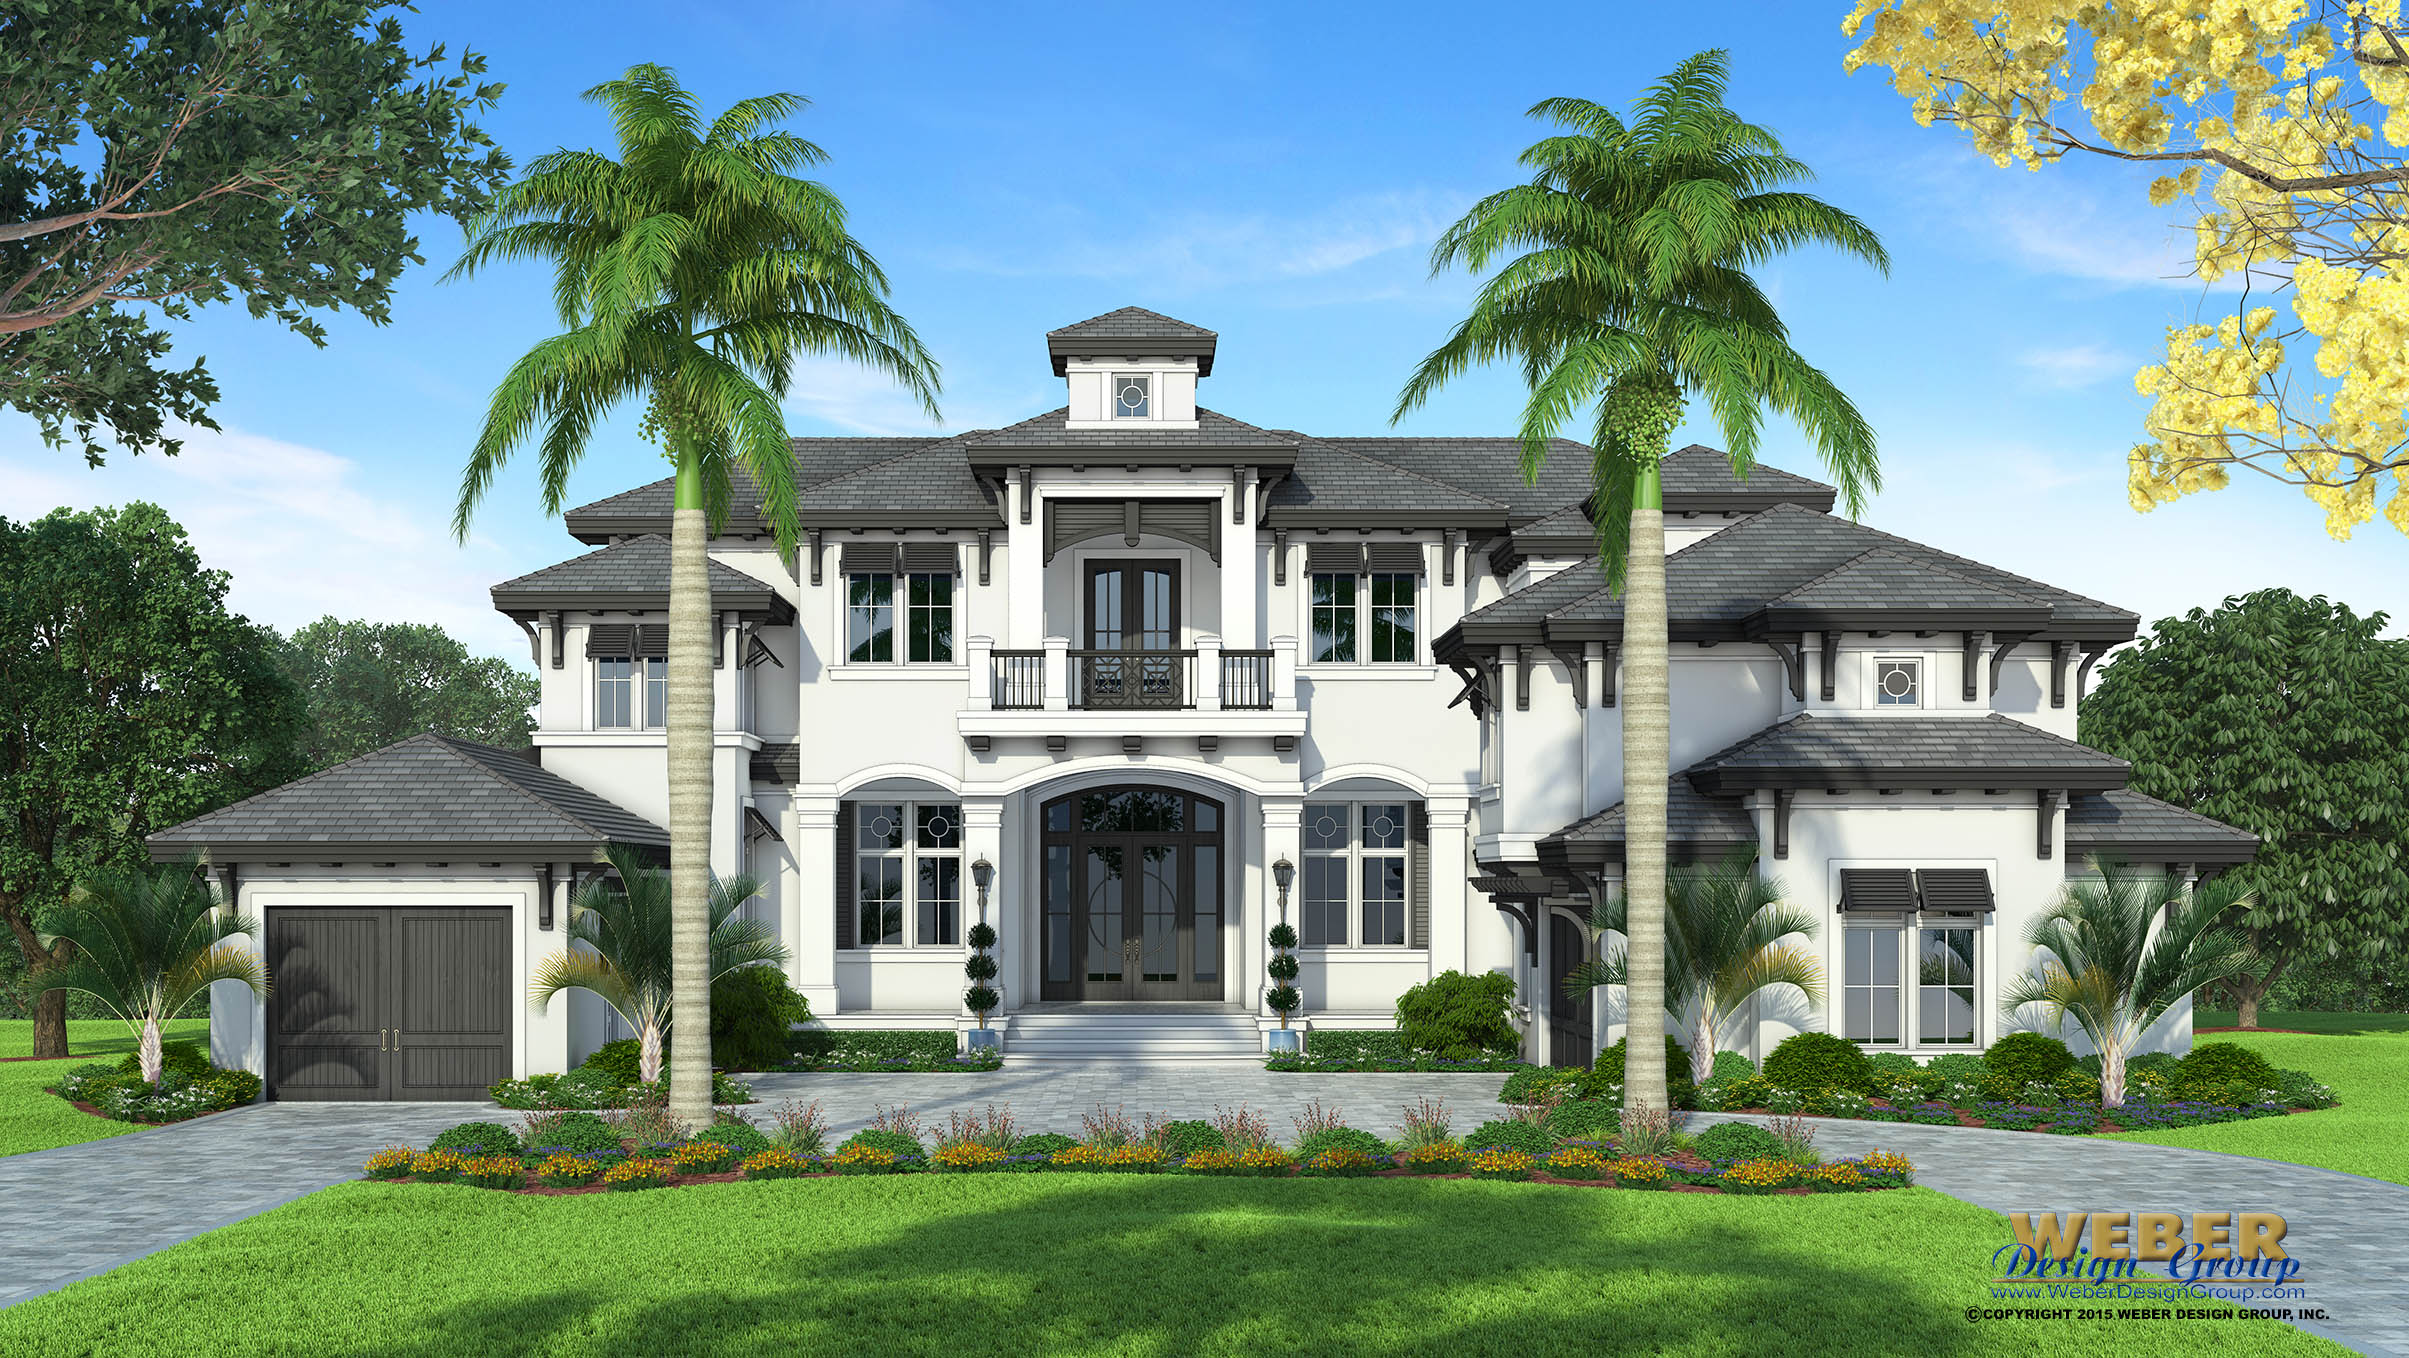 Coastal house plan luxury 2 story west indies home floor plan Home design latest